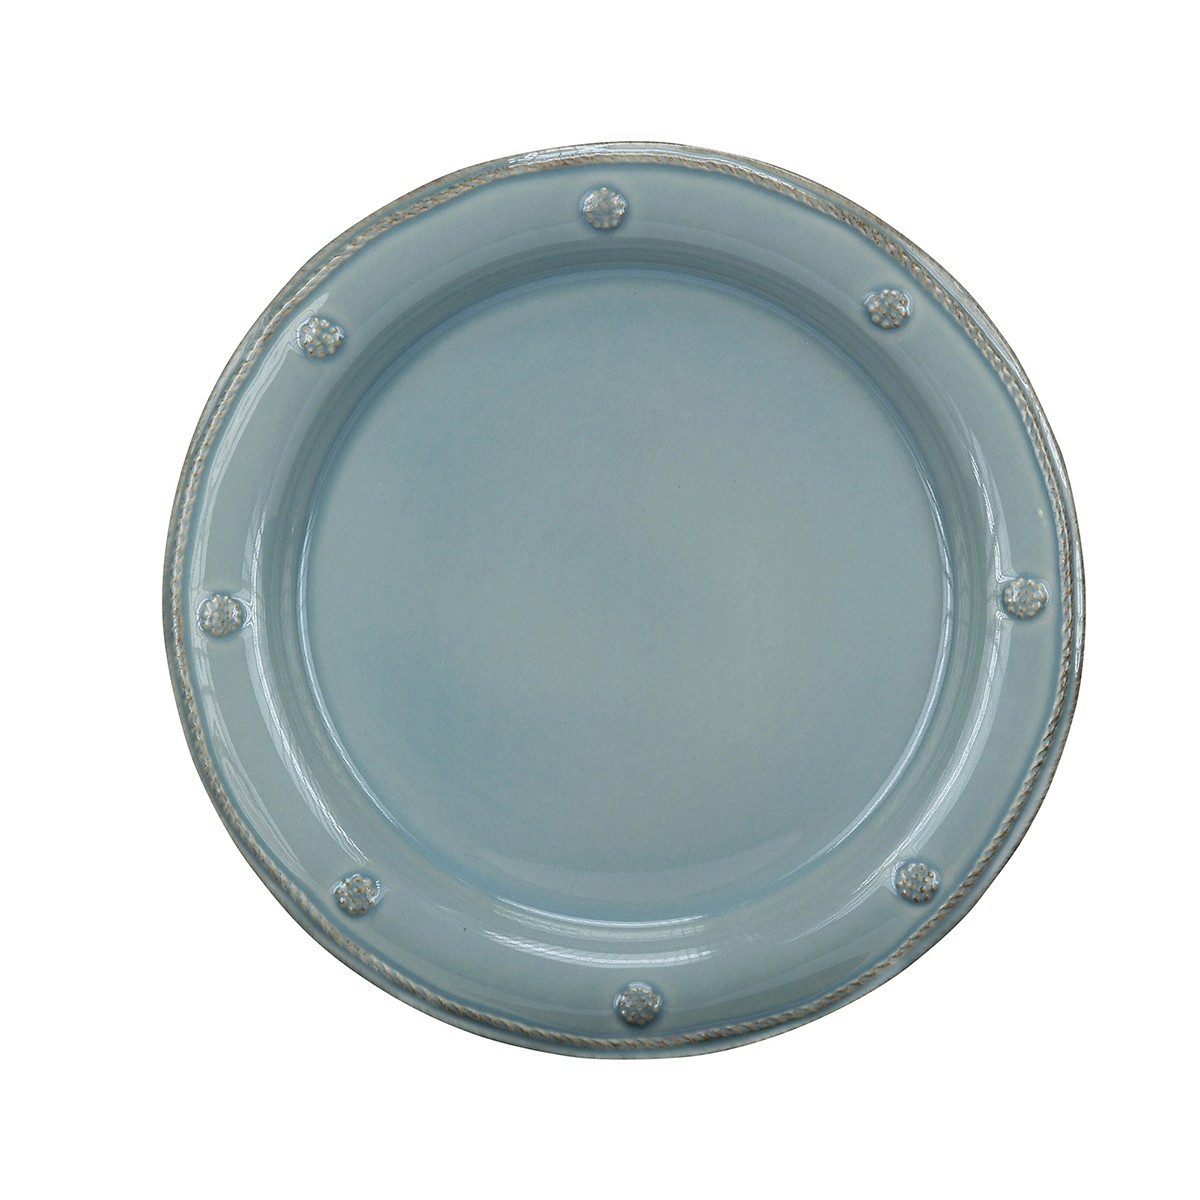 15137 - Berry & Thread Ice Blue Salad Plate (6) - $37/each - Received 6